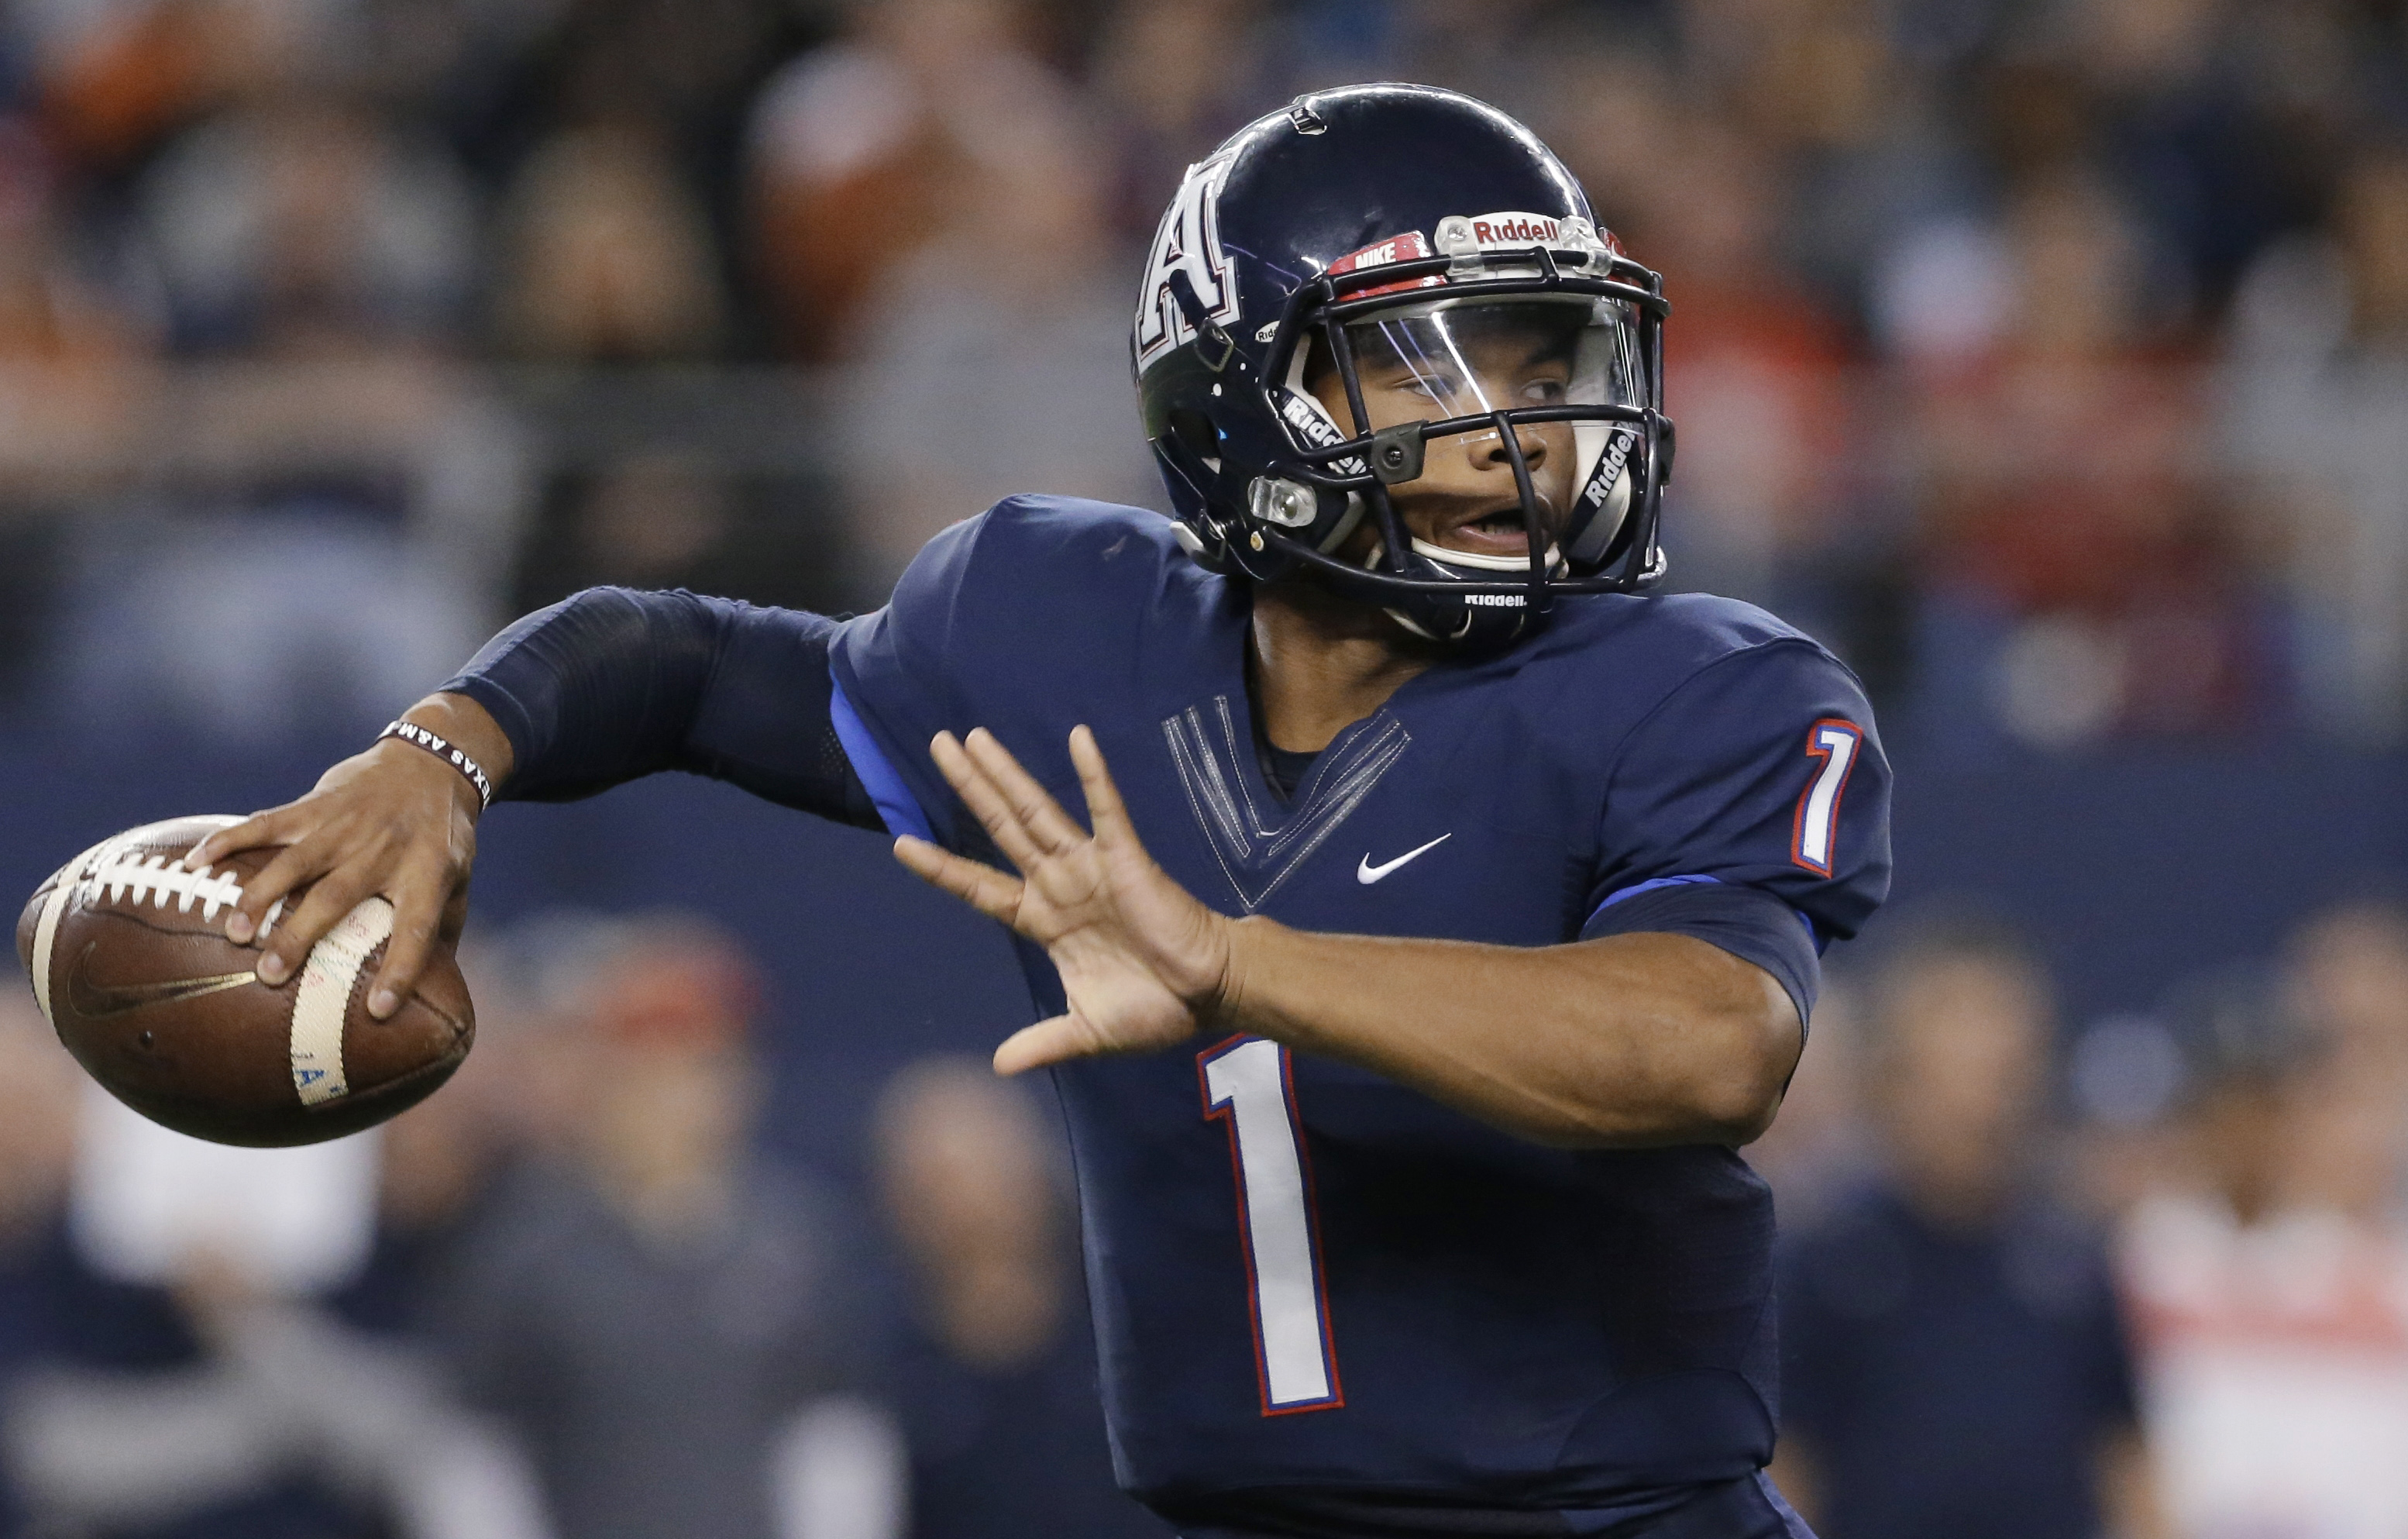 FILE - In this Dec. 20, 2014, file photo, Allen quarterback Kyler Murray prepares to pass during the UIL 6A Division I state championship football game against Cypress Ranch in Arlington, Texas. Murray was honored as male national prep athlete of the year